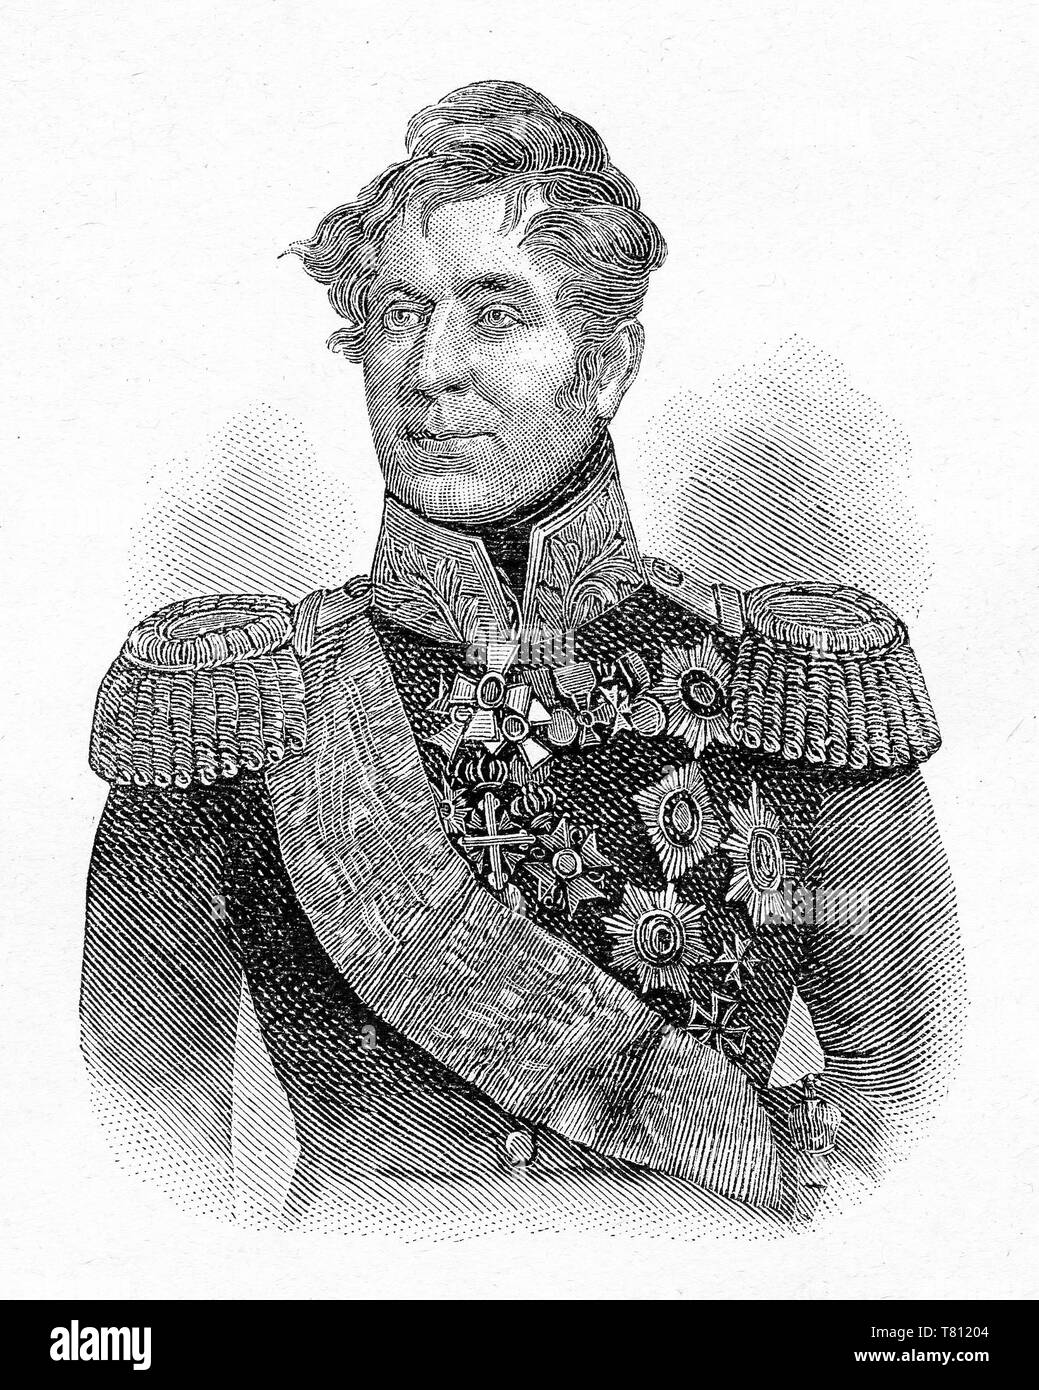 Count Mikhail Andreyevich , Russian general of Serbian origin, prominent during the Napoleonic Wars. Digital improved reproduction from Illustrated overview of the life of mankind in the 19th century, 1901 edition, Marx publishing house, St. Petersburg - Stock Image